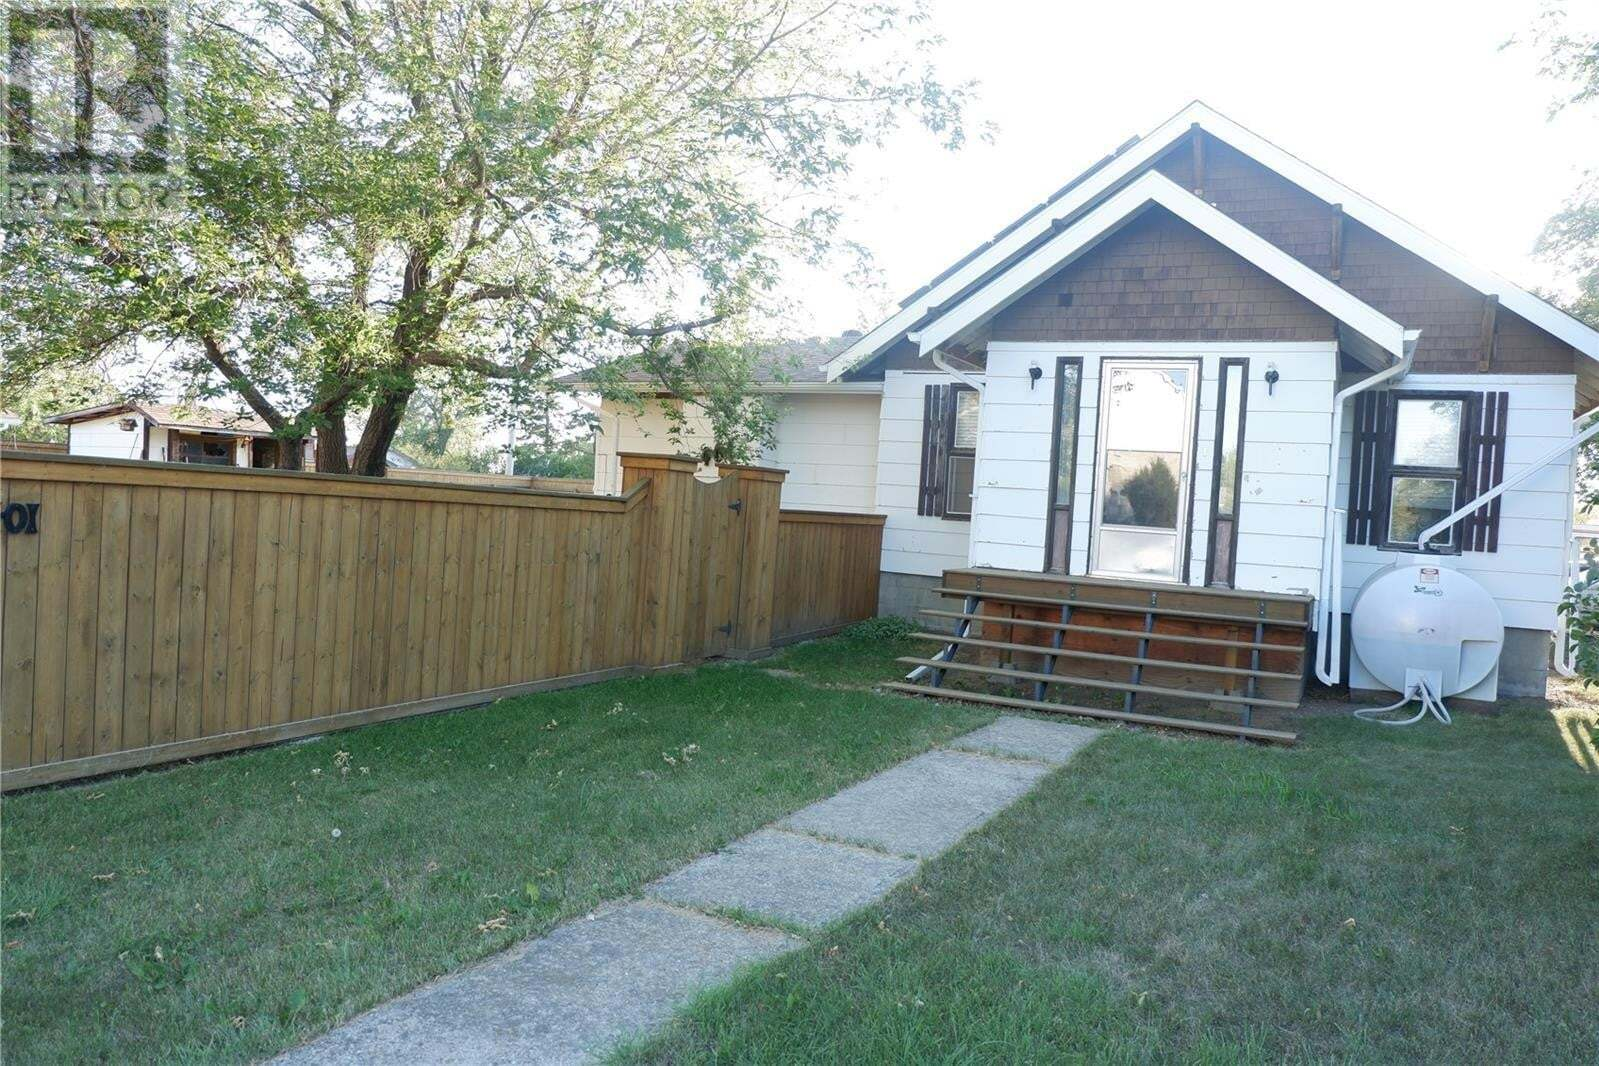 House for sale at 401 5th Ave W Assiniboia Saskatchewan - MLS: SK820922